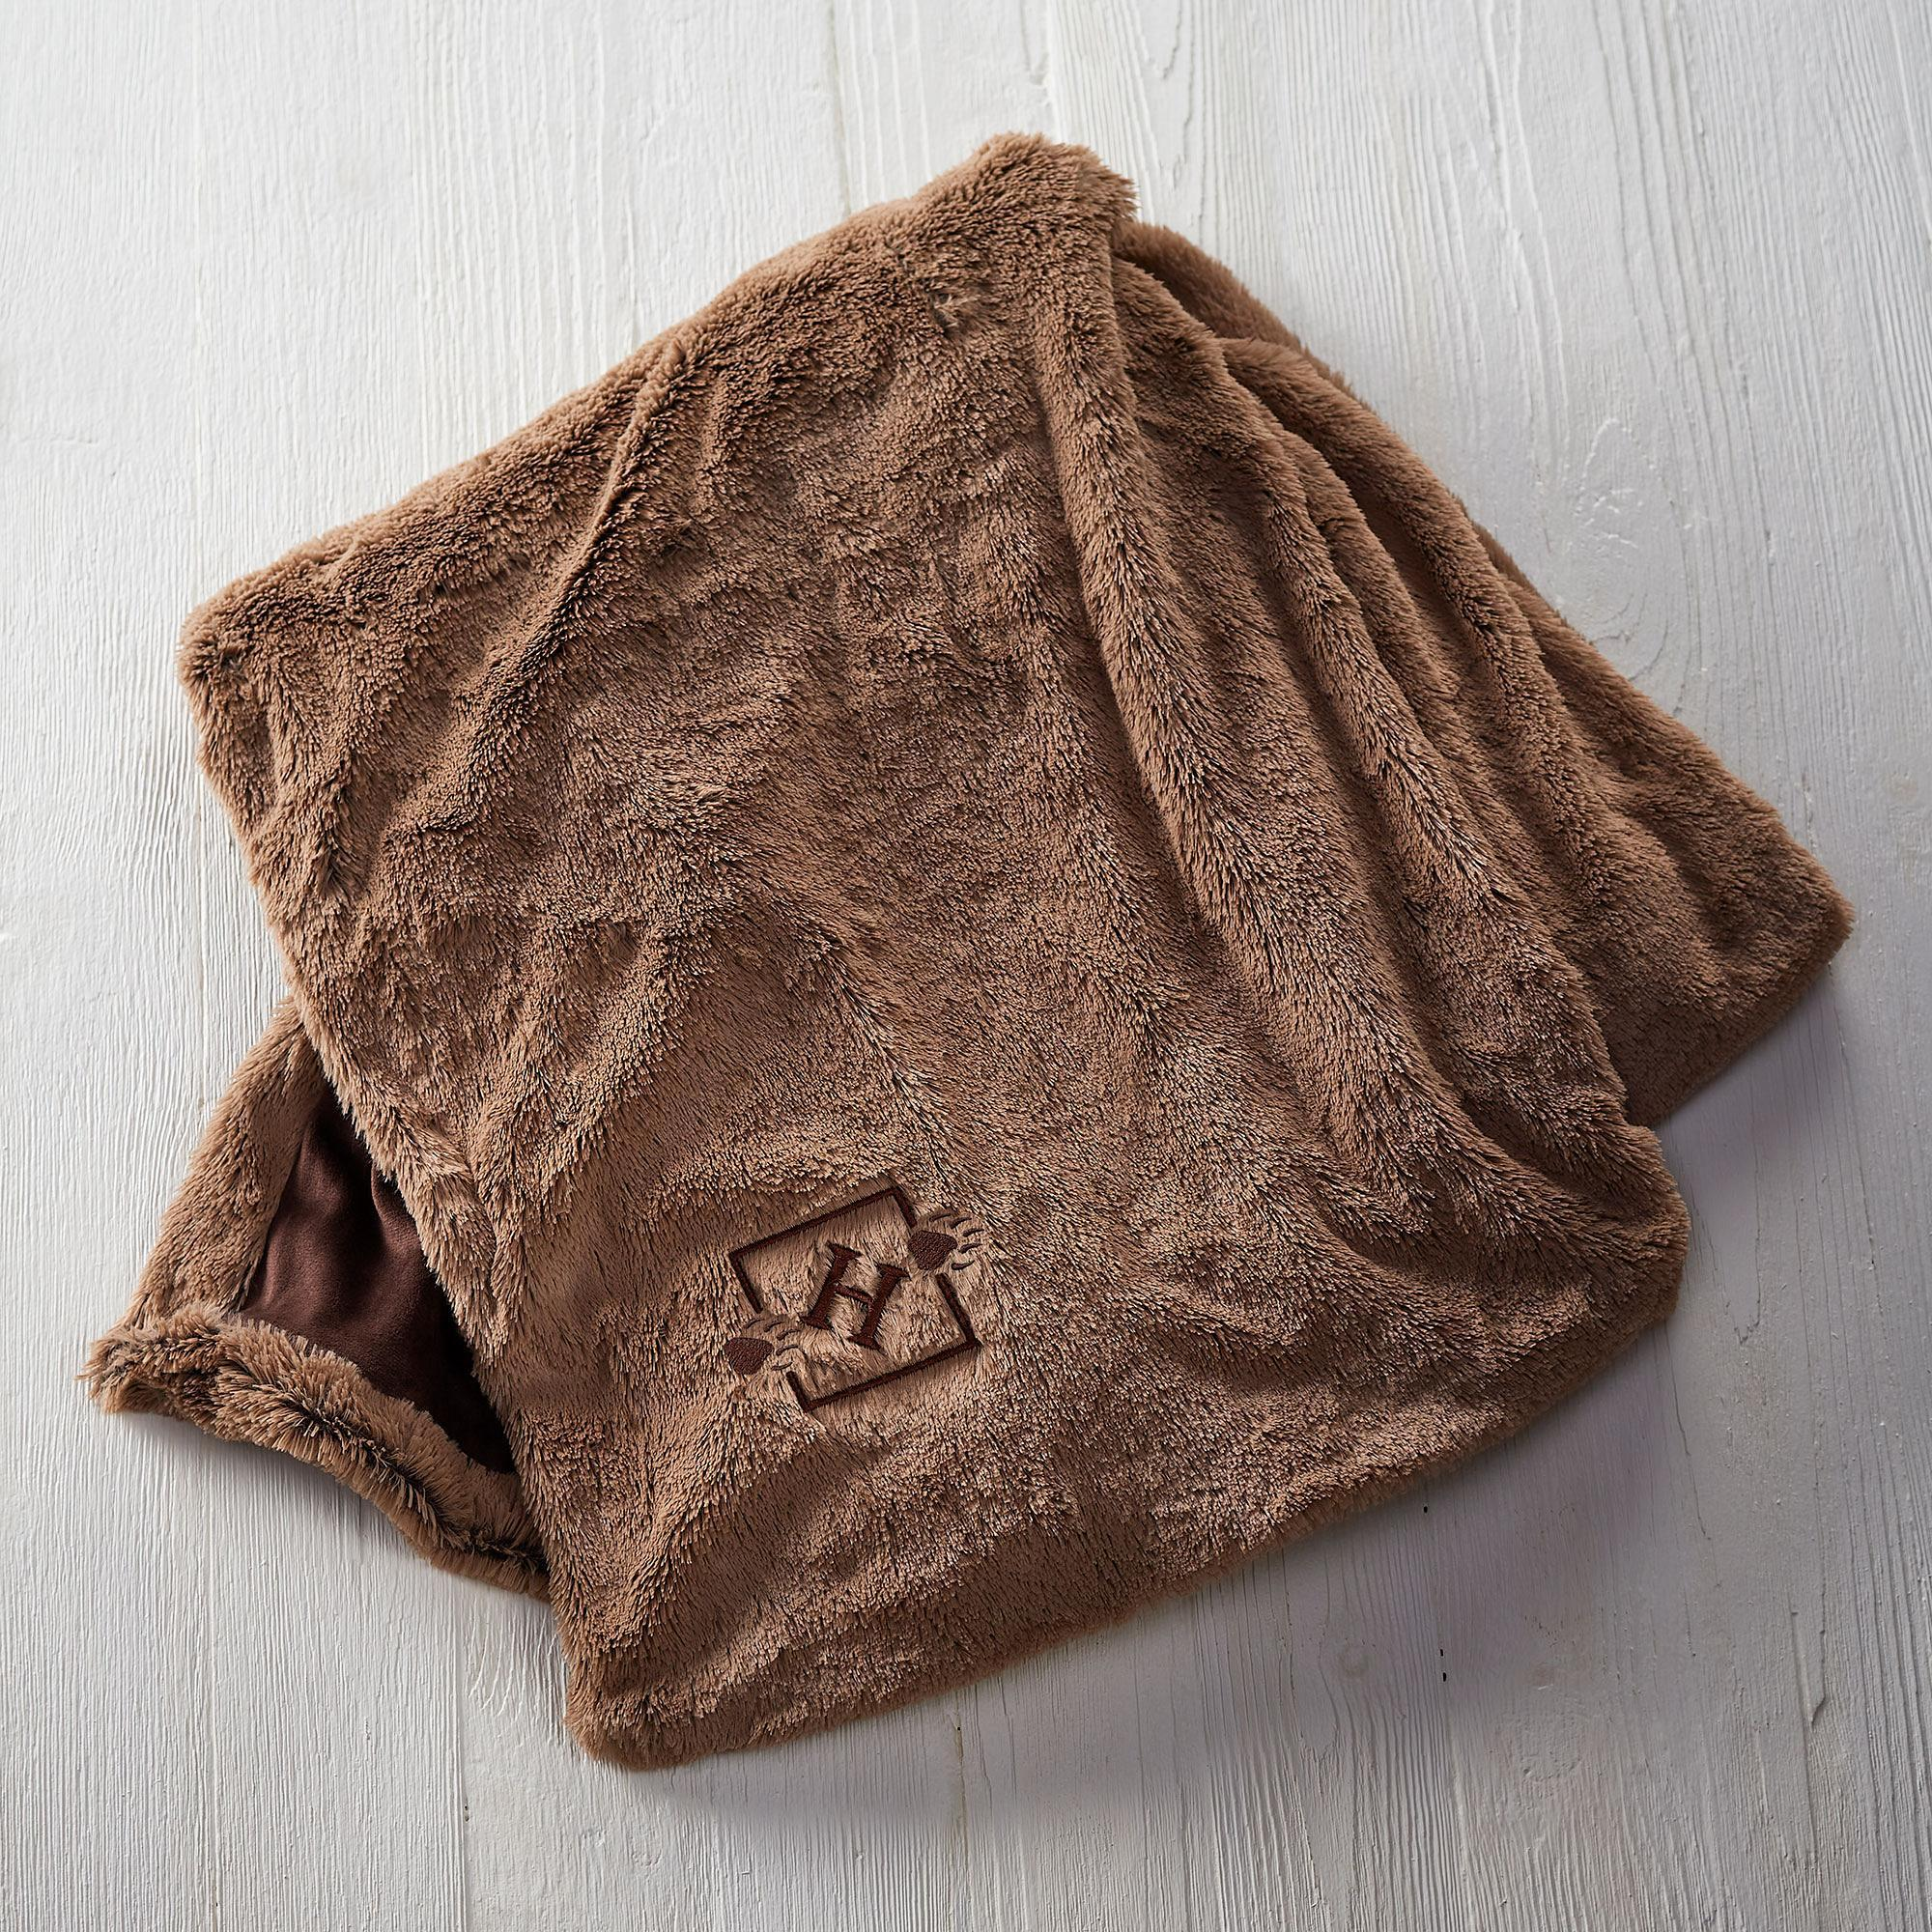 Bear Tracks Personalized Throw Blanket